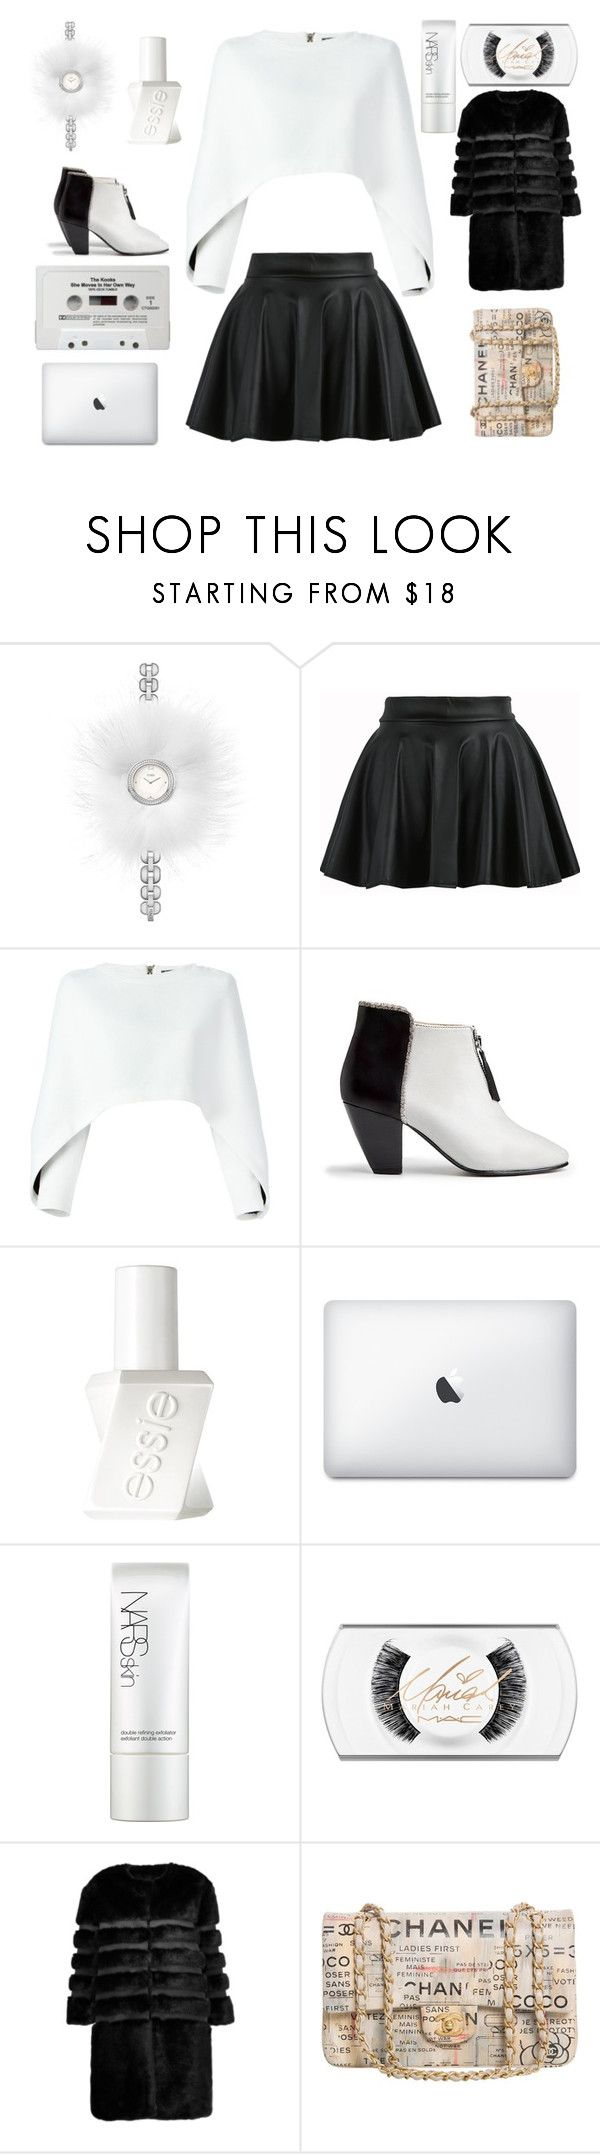 """Kim Kardashian Style"" by kimkardashianwestkkw ❤ liked on Polyvore featuring Fendi, Balmain, Nine to Five, Essie, CASSETTE, NARS Cosmetics, AINEA and Chanel"